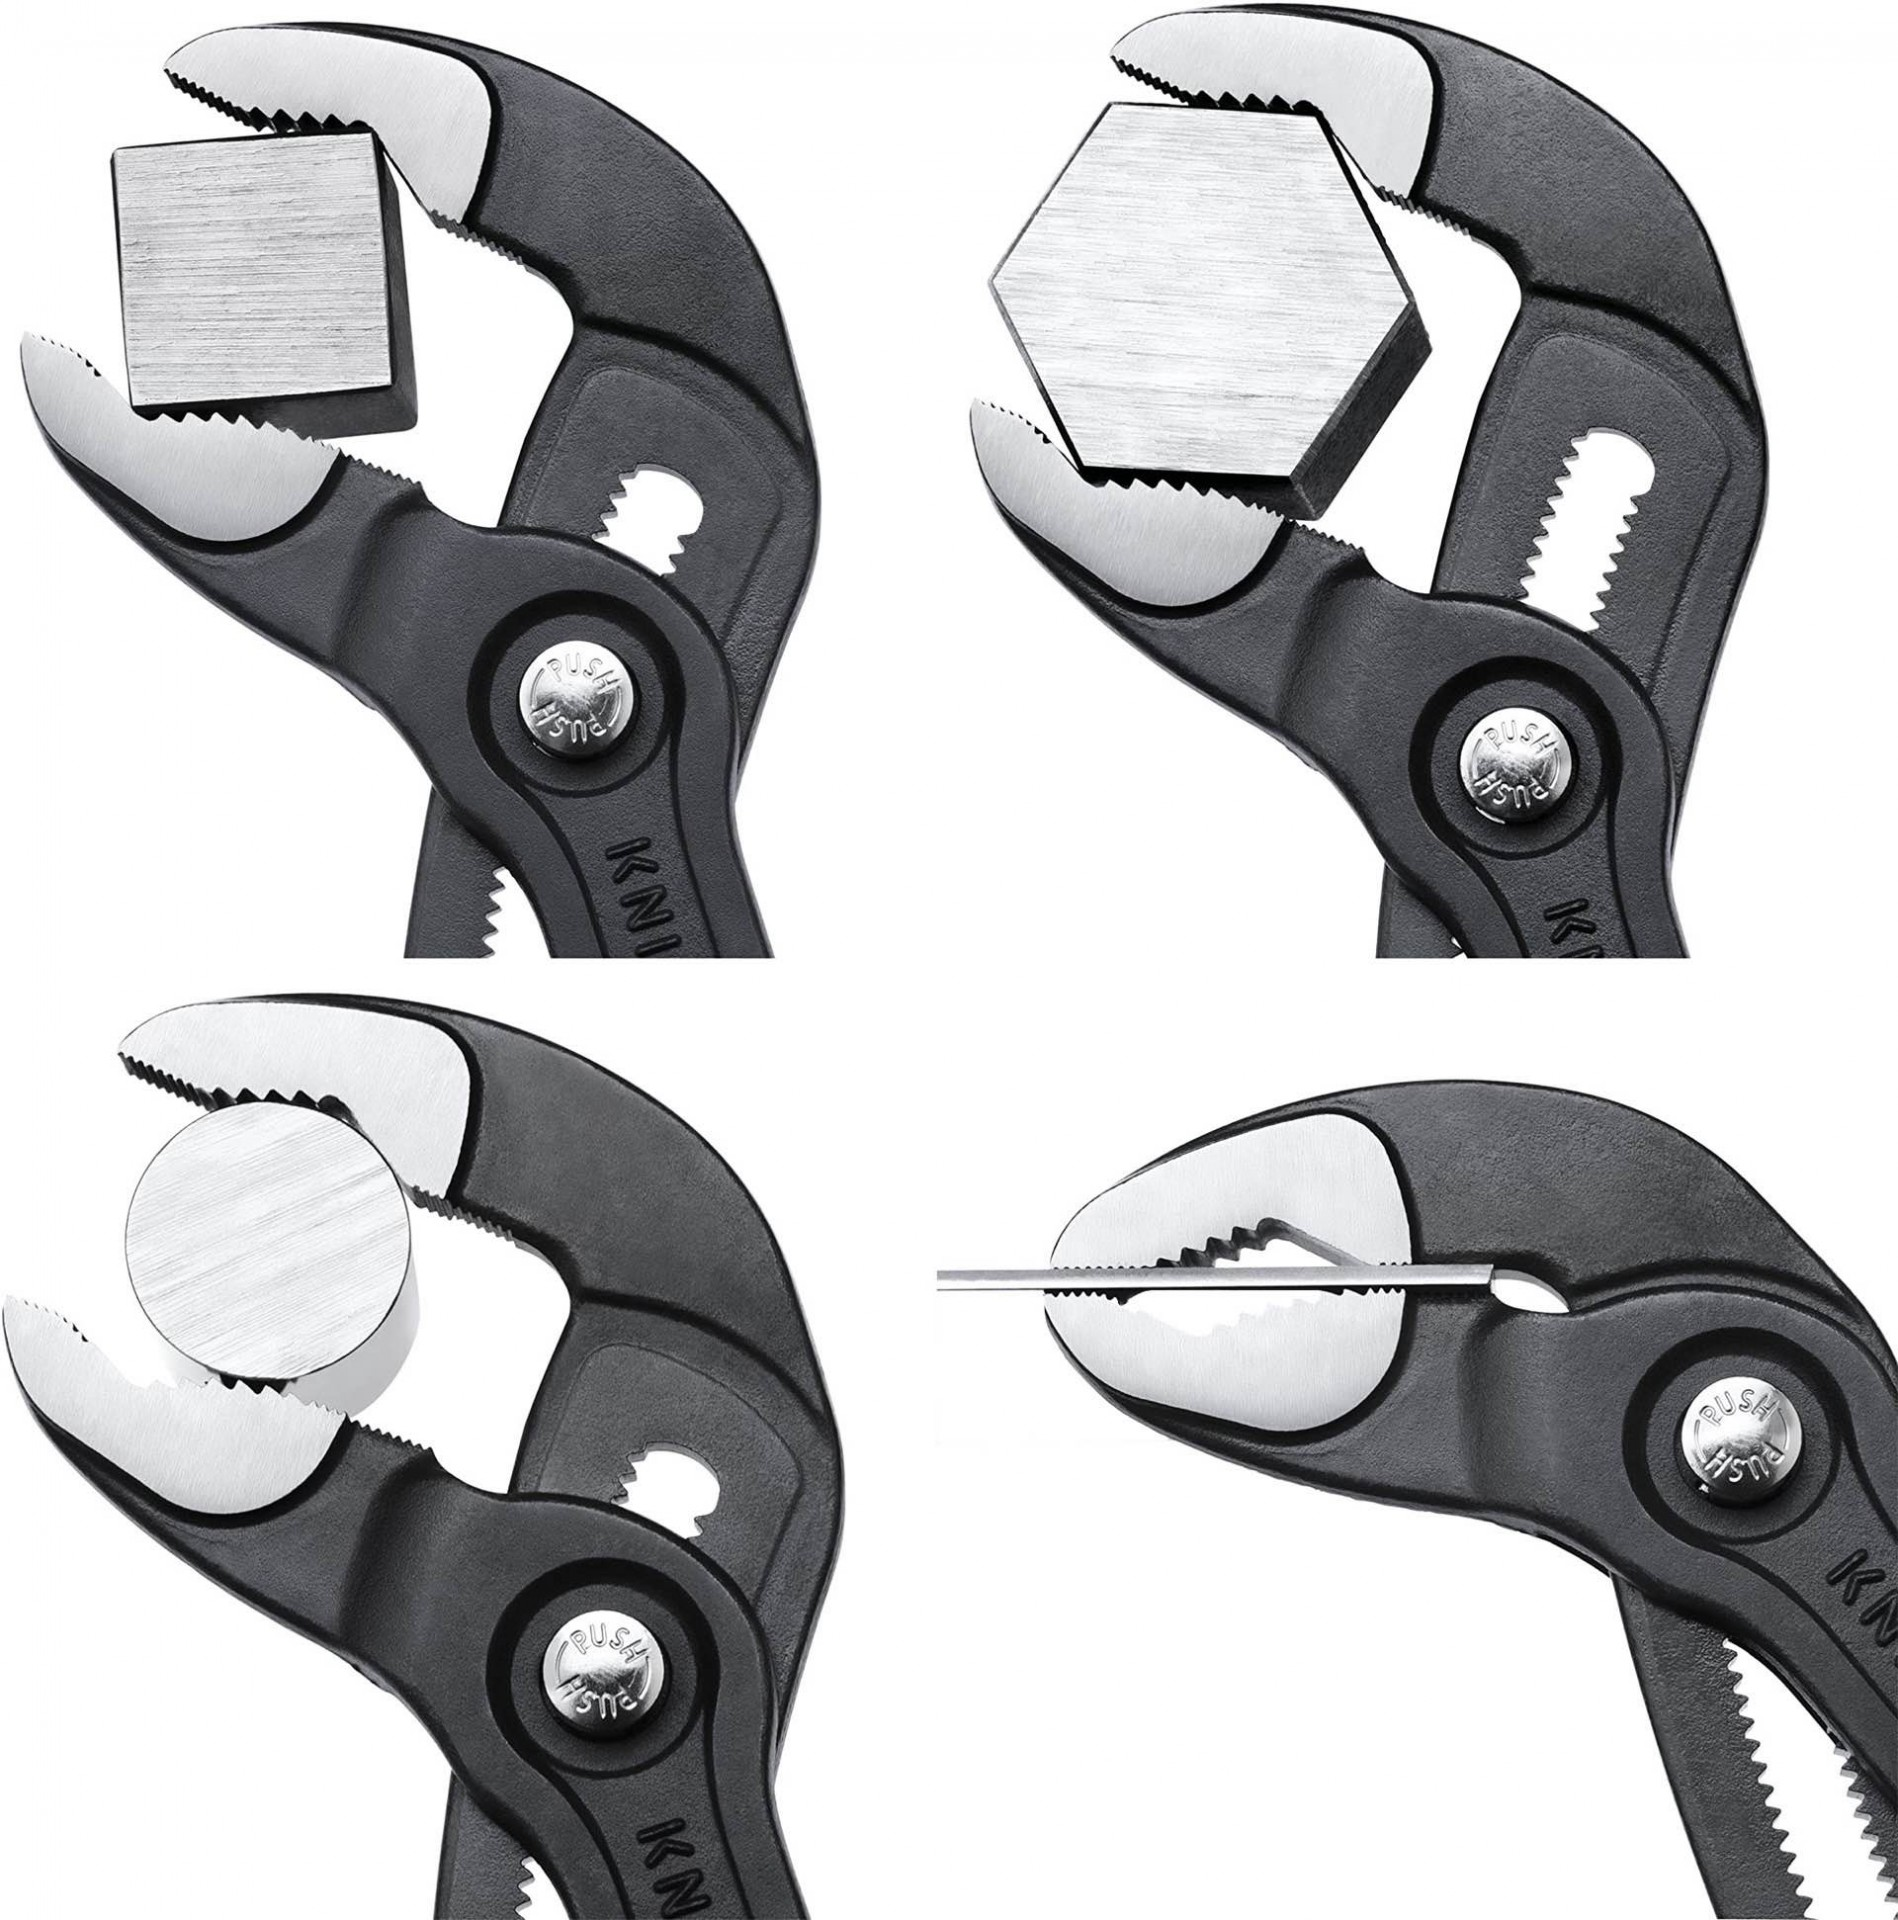 knipex-cobra-pliers-with-comfort-grip-2